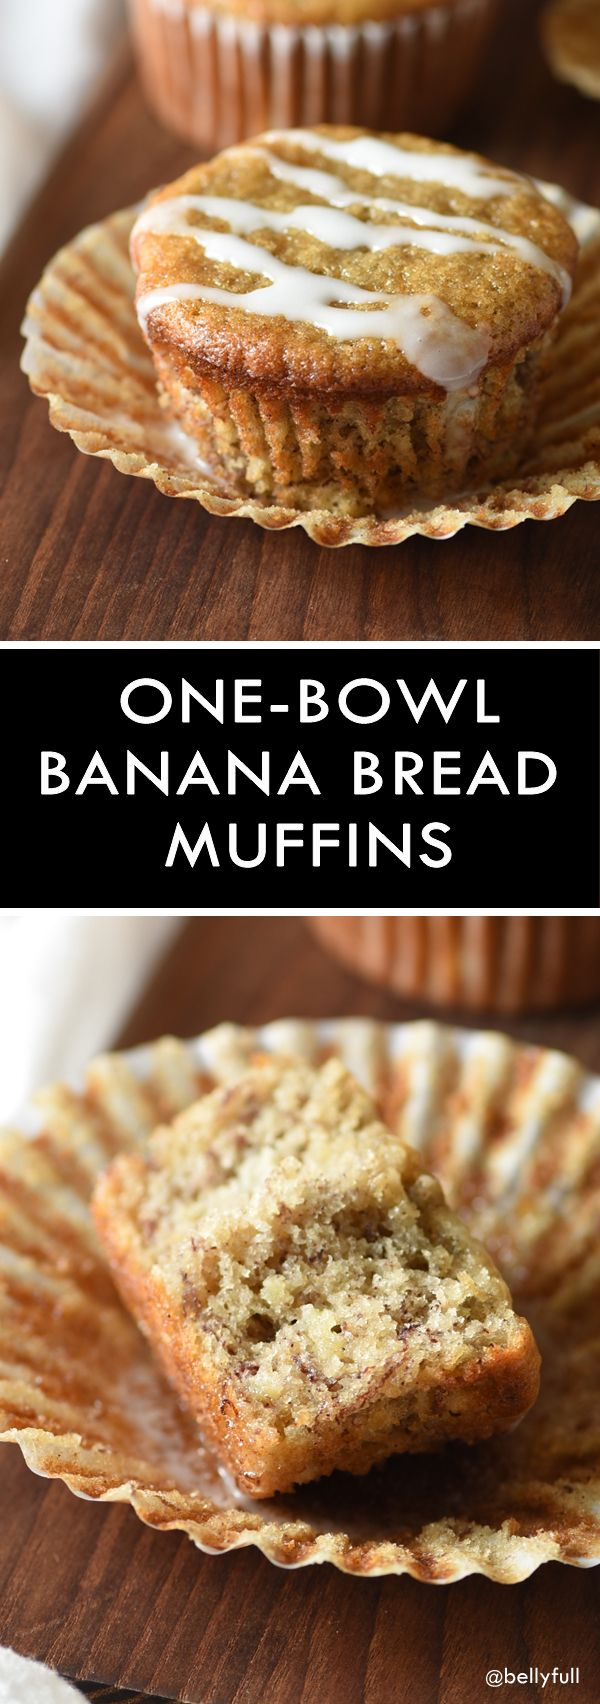 It's classic banana bread converted to muffins with added Greek yogurt for less guilt, and all made in one bowl. Delicious and portable!